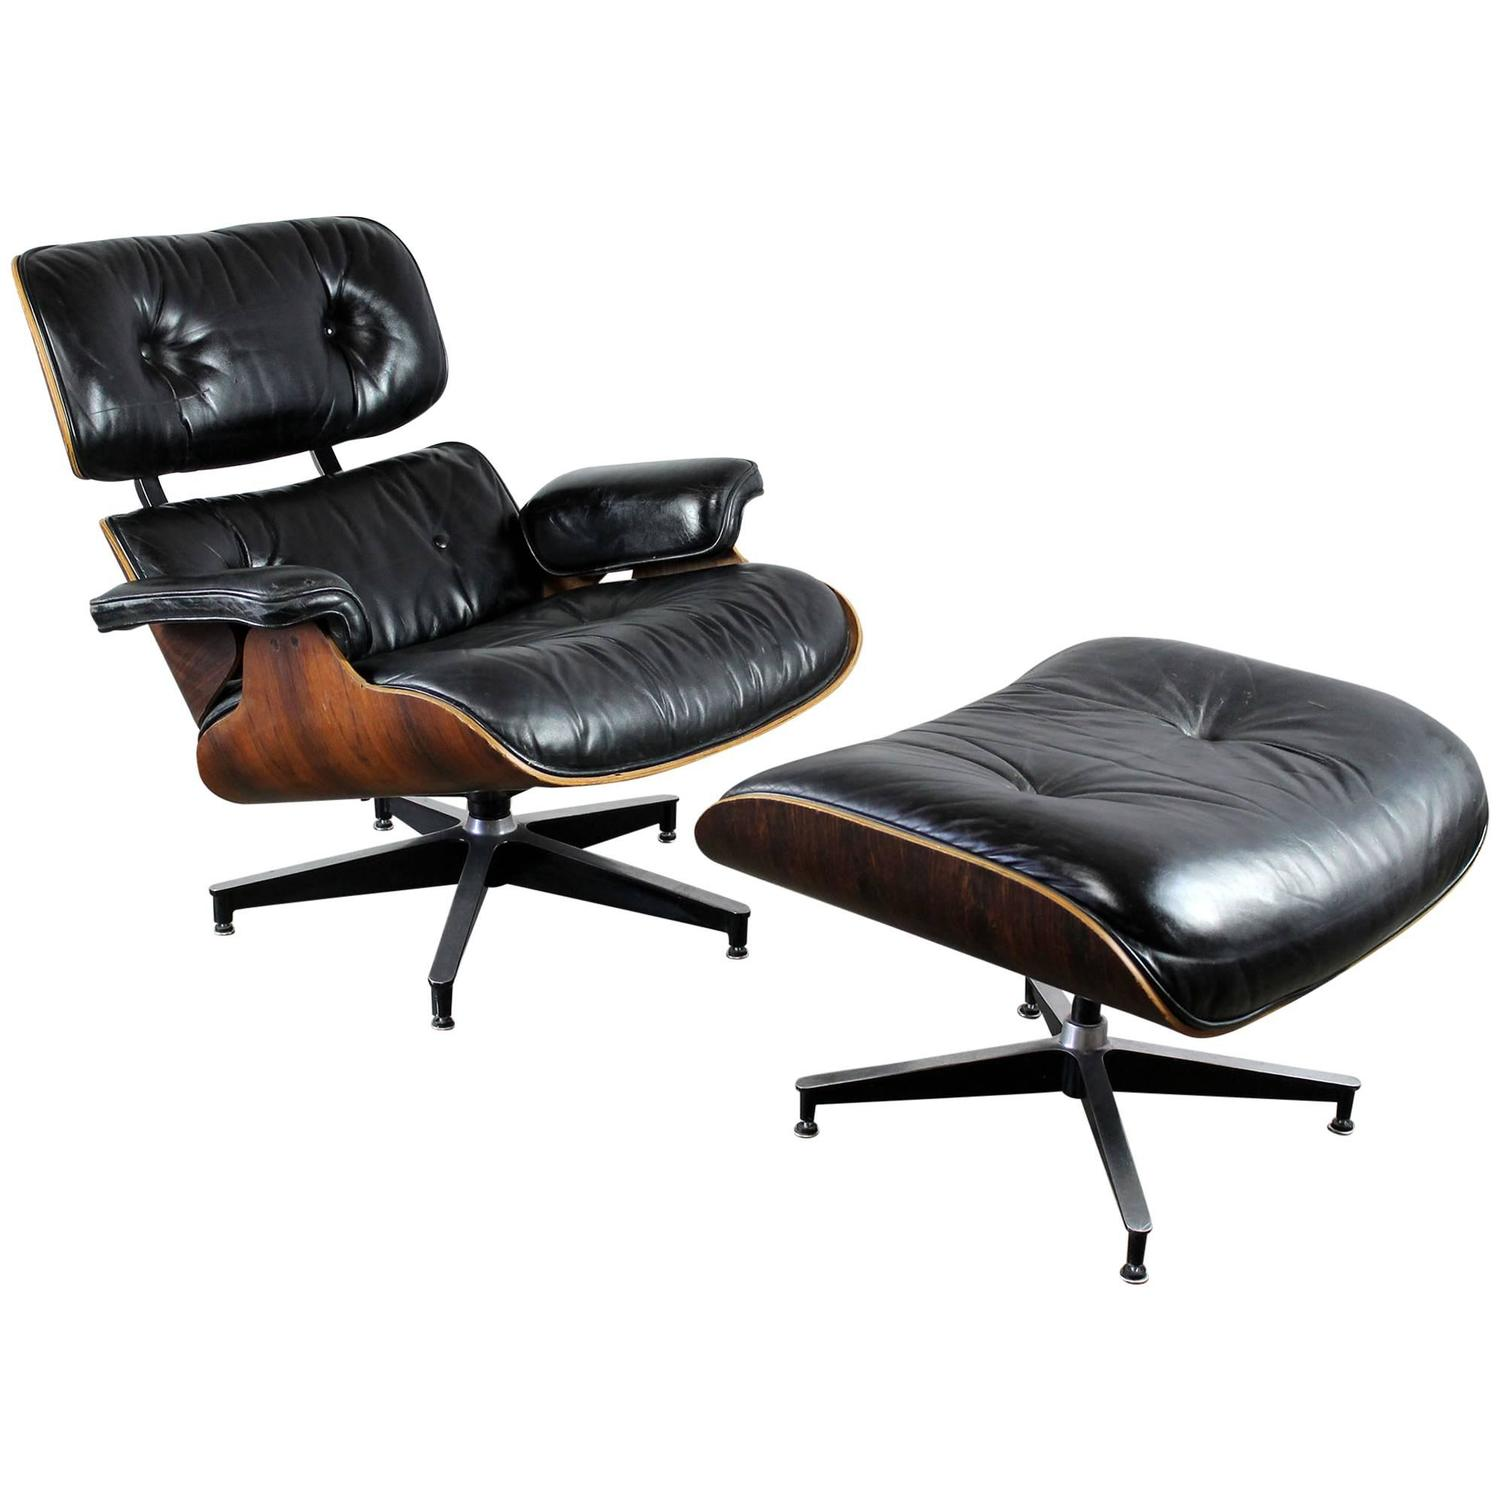 Eames Chair Repair Vintage Herman Miller Eames Lounge Chair And Ottoman In